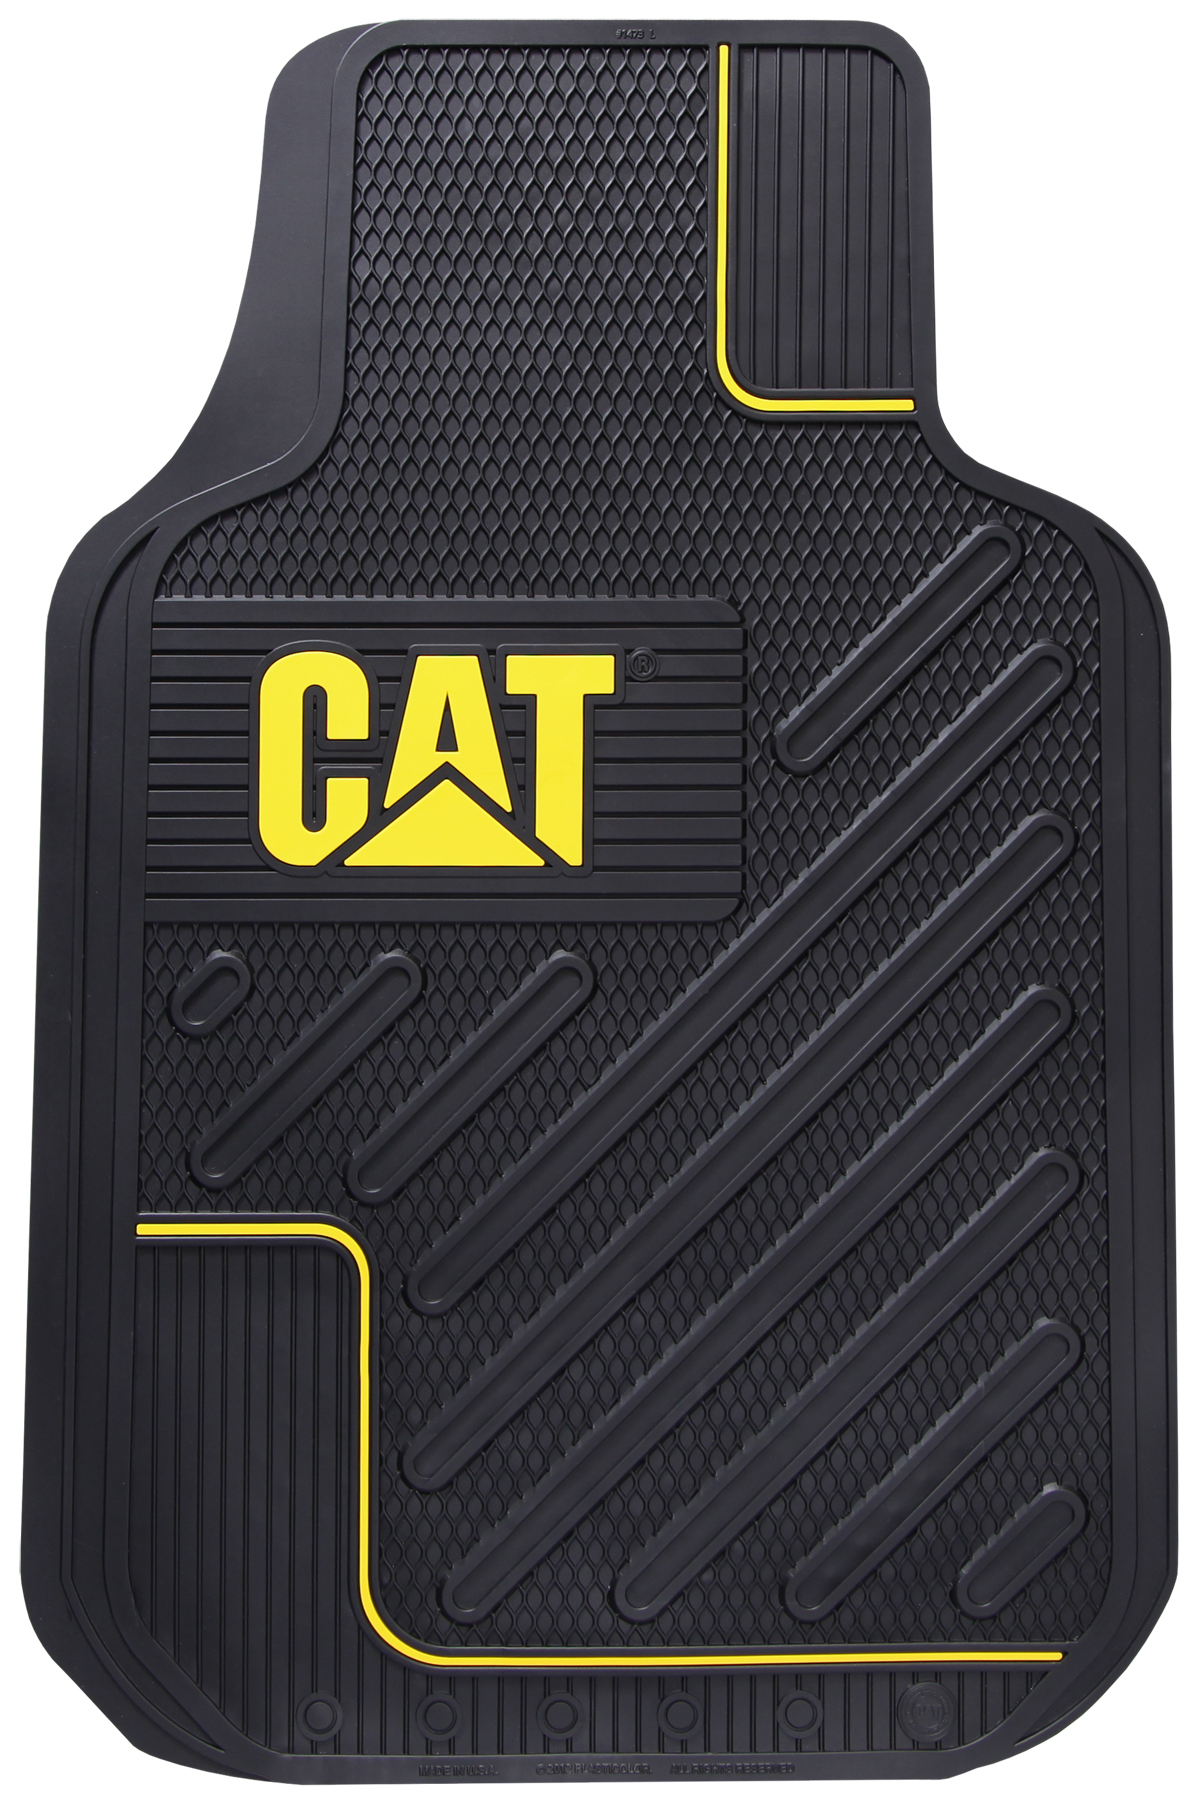 Cat Merchandise Caterpillar Merchandise Caterpillar